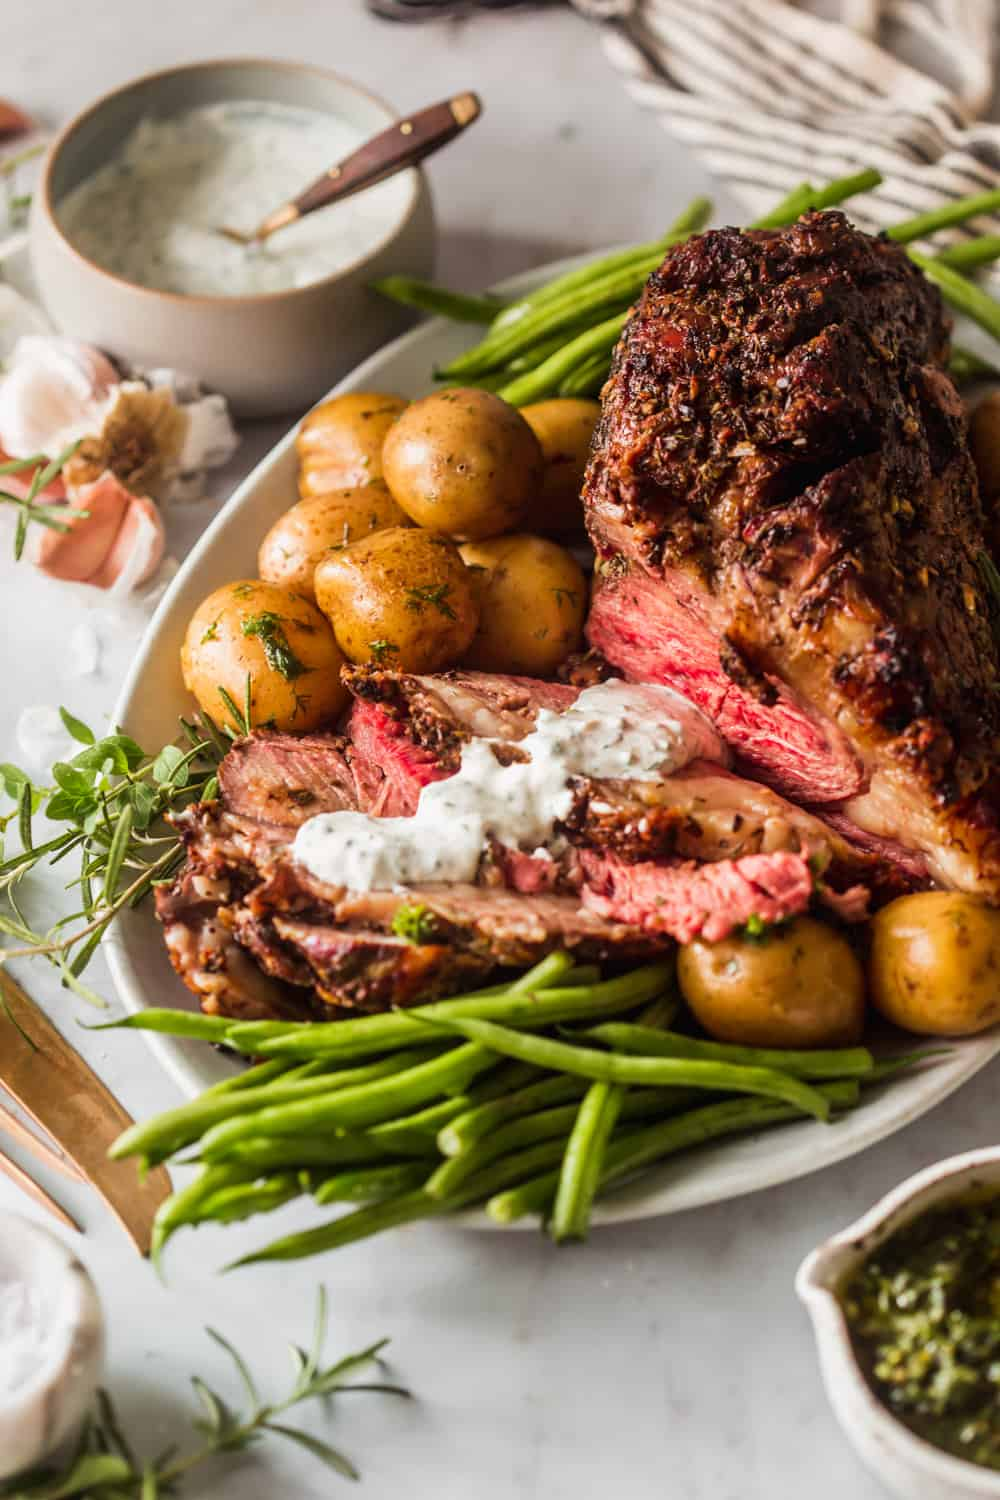 A sliced and cooked prime rib roast on a white serving plate with baby potatoes and green beans on the side